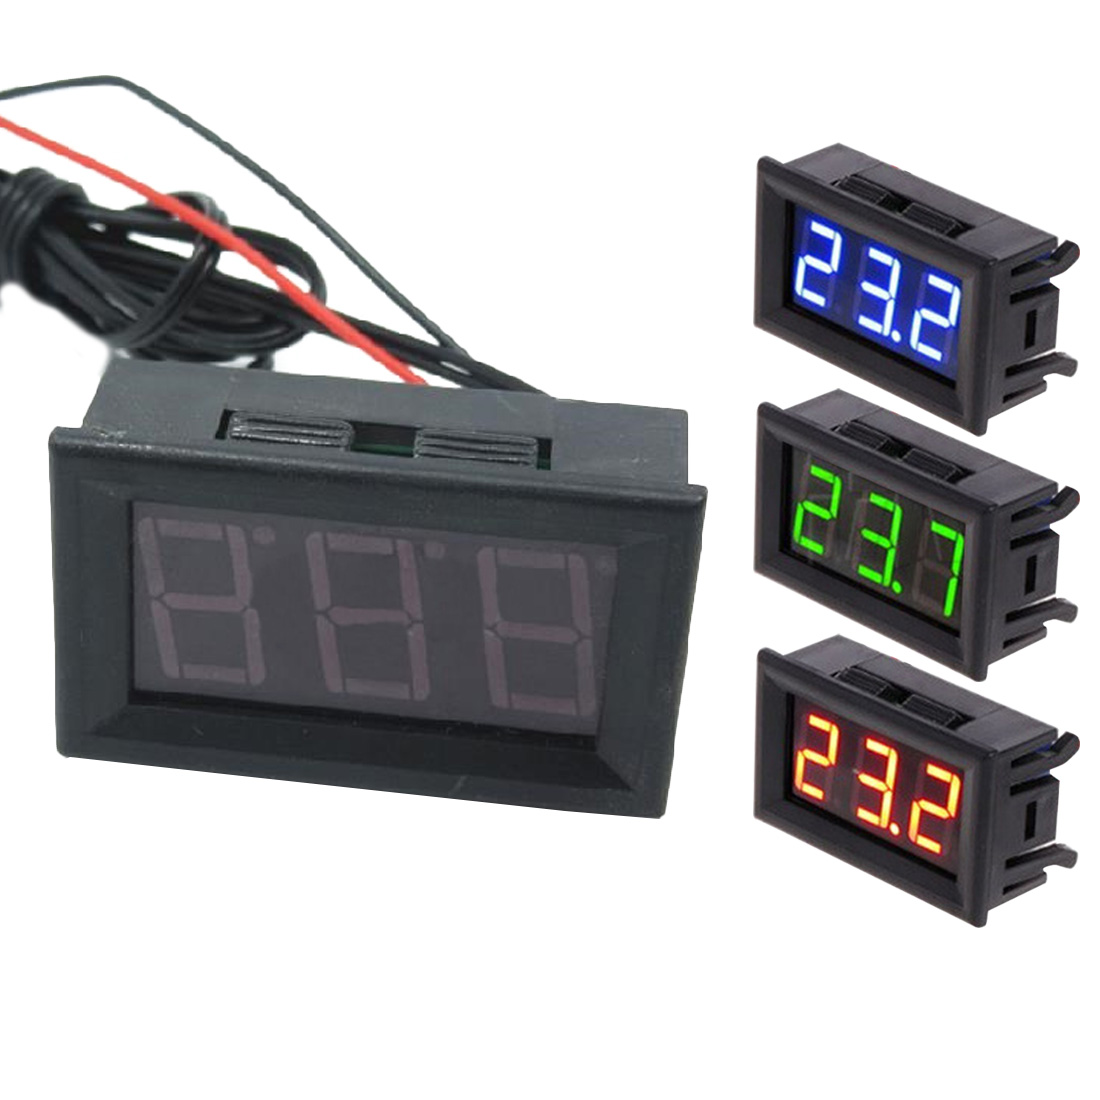 Digital LED -<font><b>50</b></font> ~ <font><b>110C</b></font> Thermometer Automotive Temperature Monitor Panel Meter DC 5-12V Digital Thermometer image